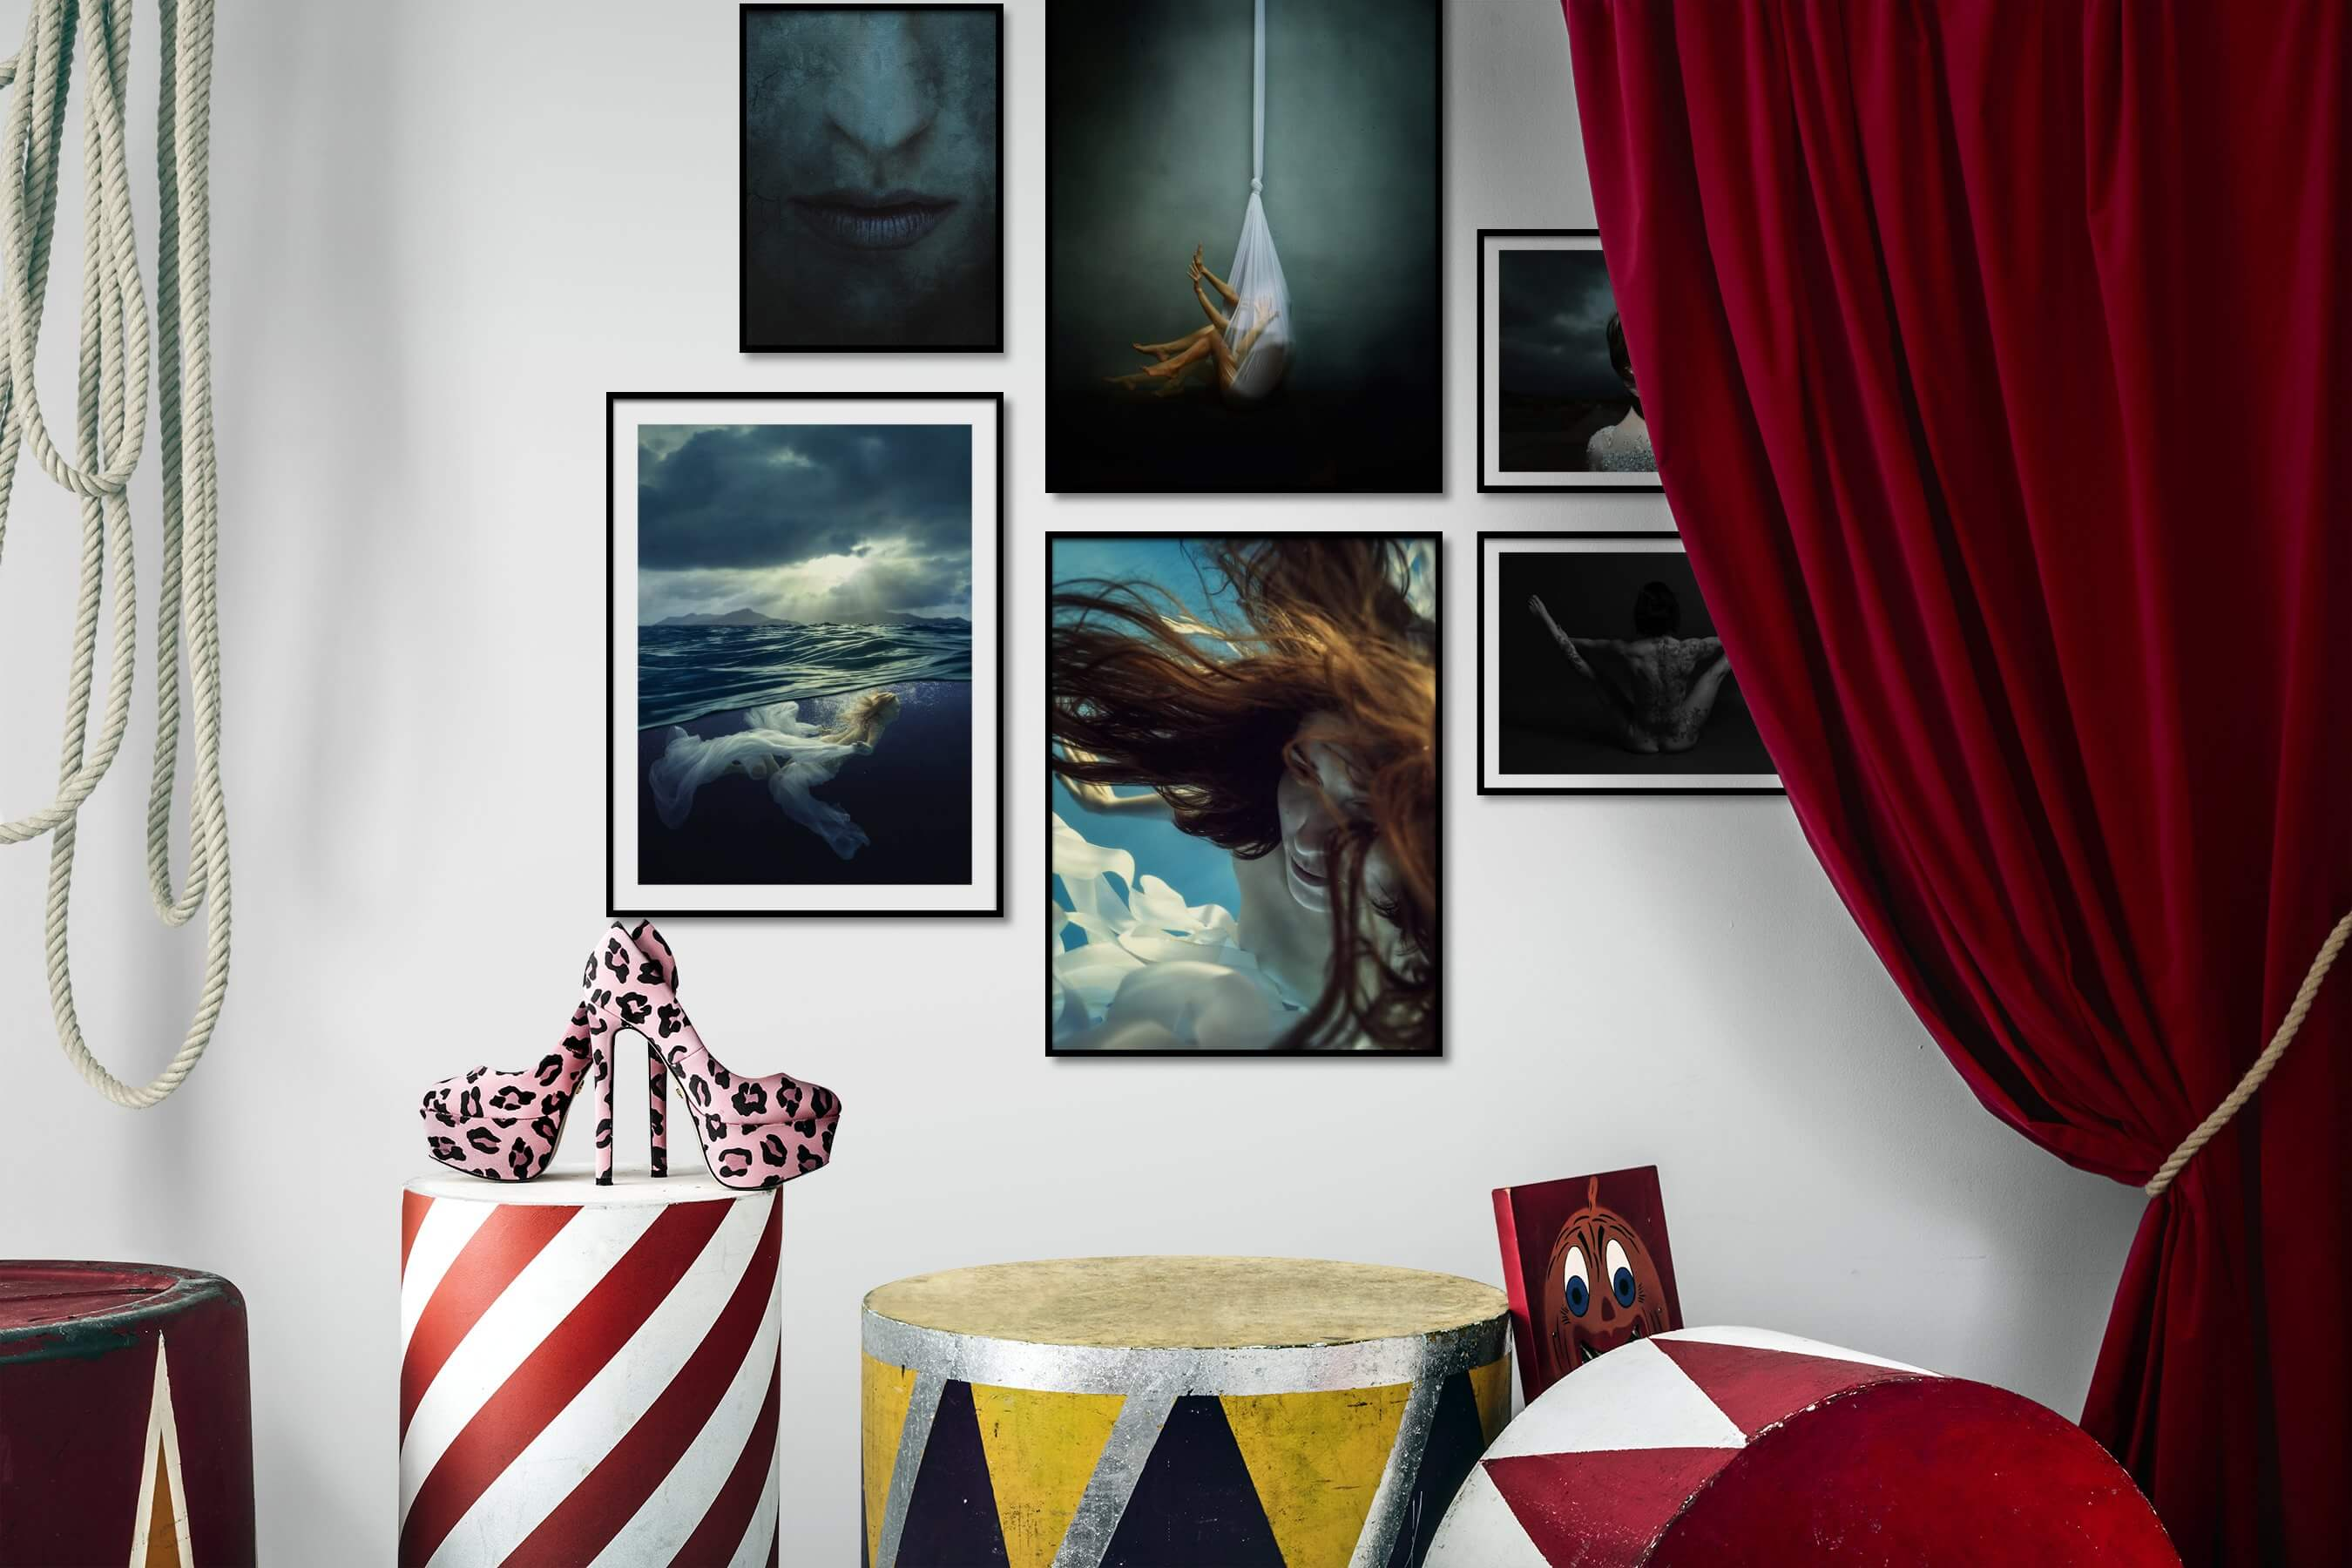 Gallery wall idea with six framed pictures arranged on a wall depicting Fashion & Beauty, Dark Tones, Artsy, Beach & Water, Black & White, and For the Minimalist